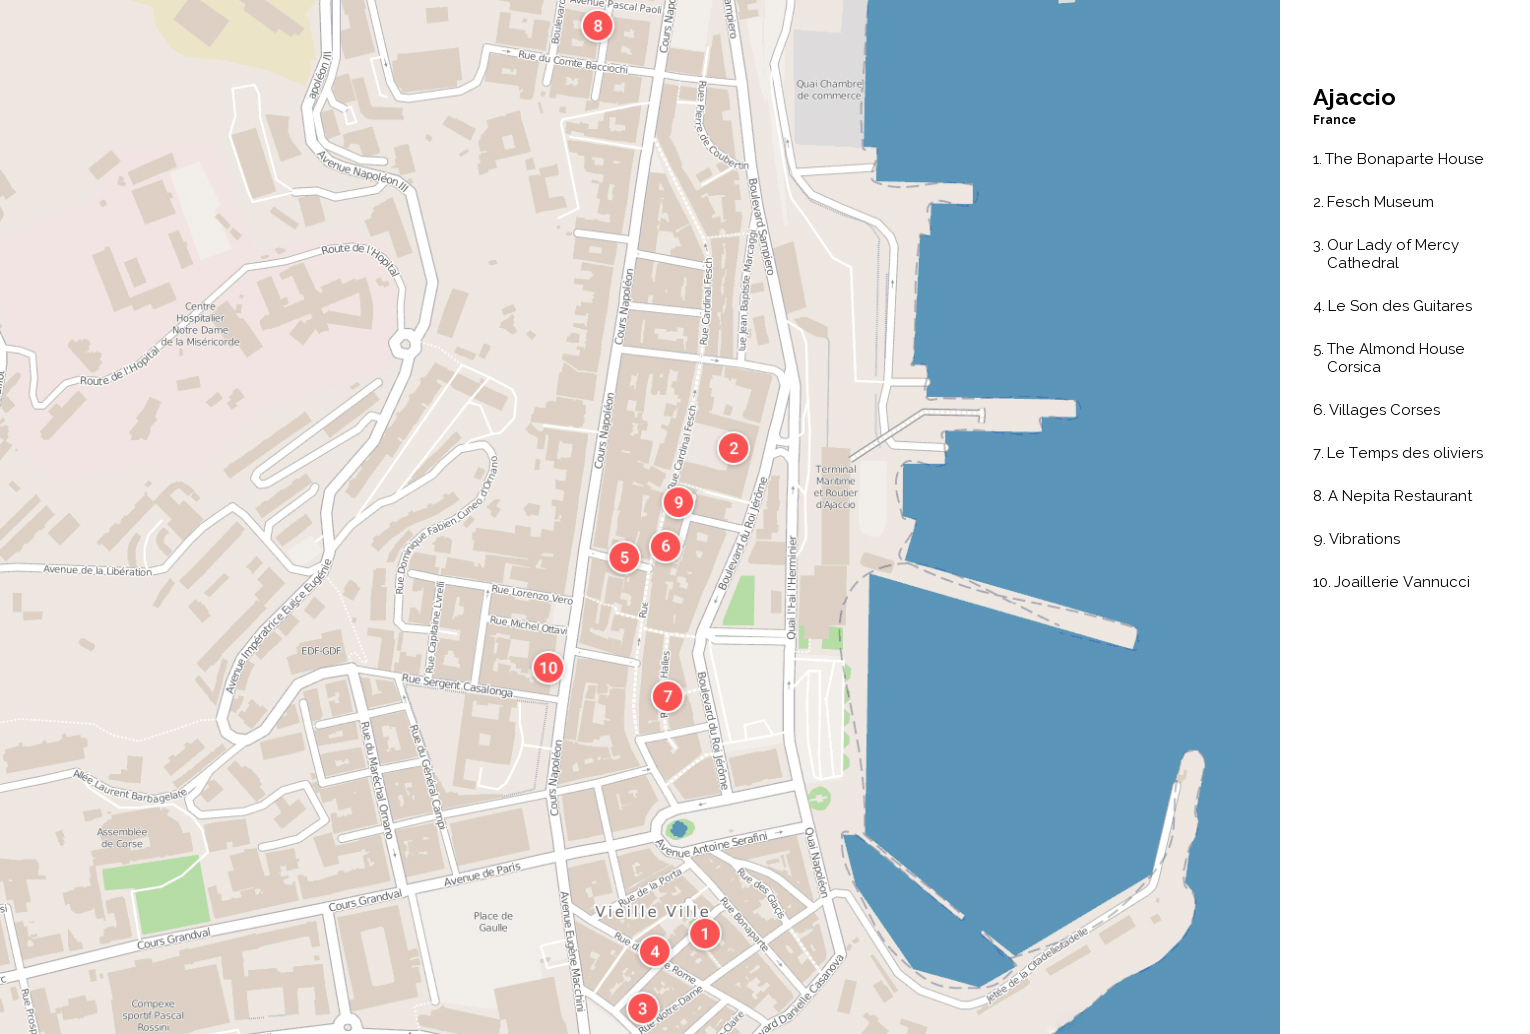 Large Ajaccio Maps for Free Download and Print HighResolution and